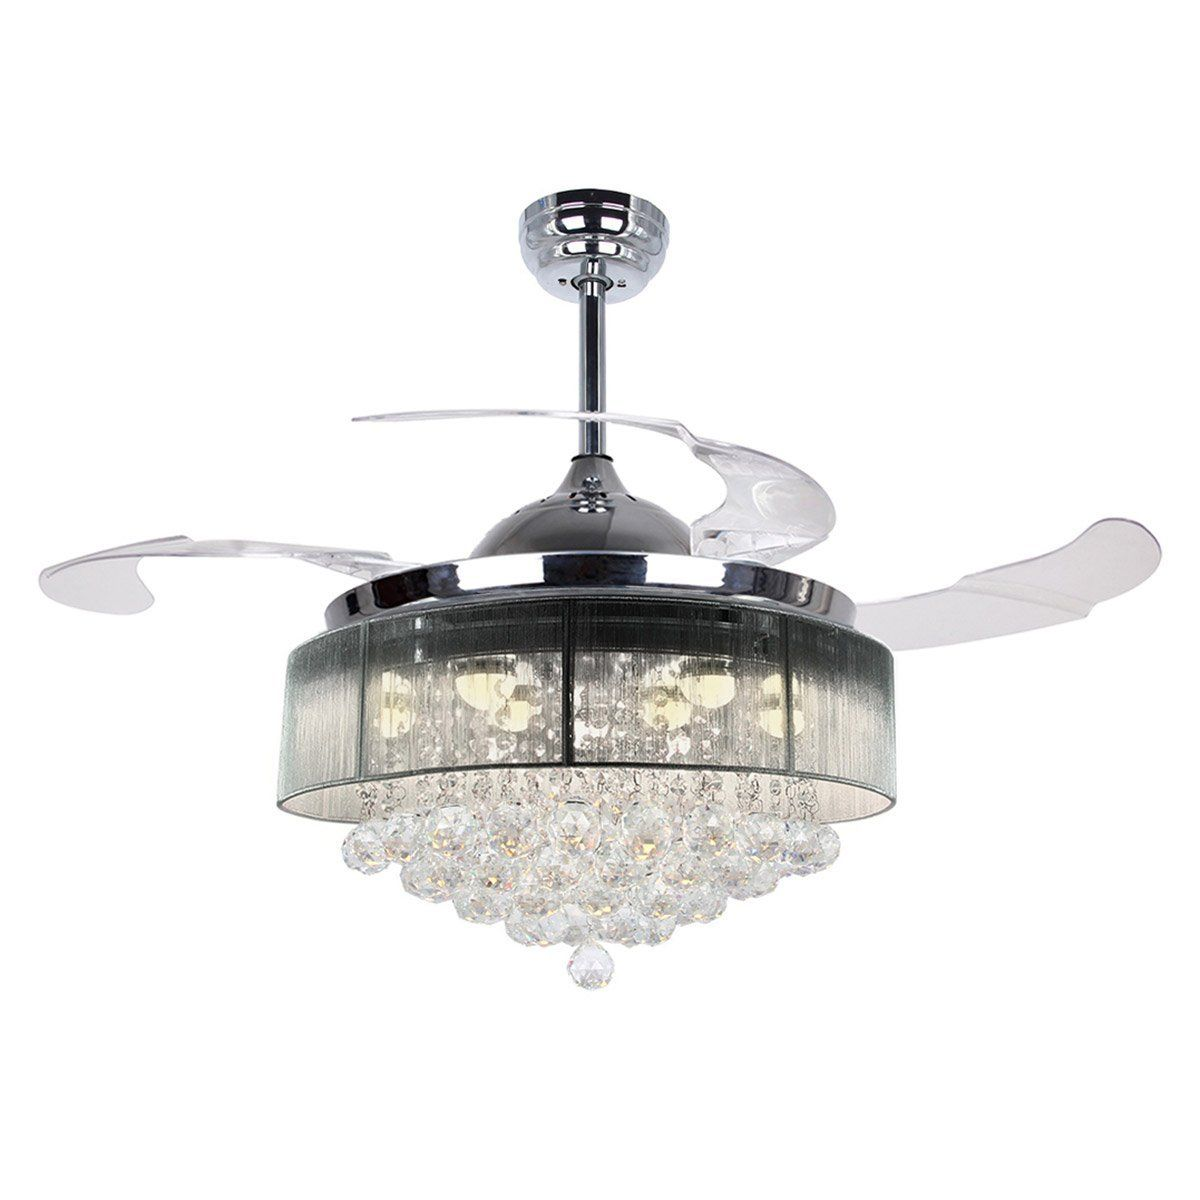 Ceiling Fans With Lights 42 Modern Led Ceiling Fan Retractable Blades Crystal Chandelier Fan With Remote Control 2700k Warm White Not Dimmable Chrome Finish Chandelier Fan Ceiling Fan With Light Ceiling